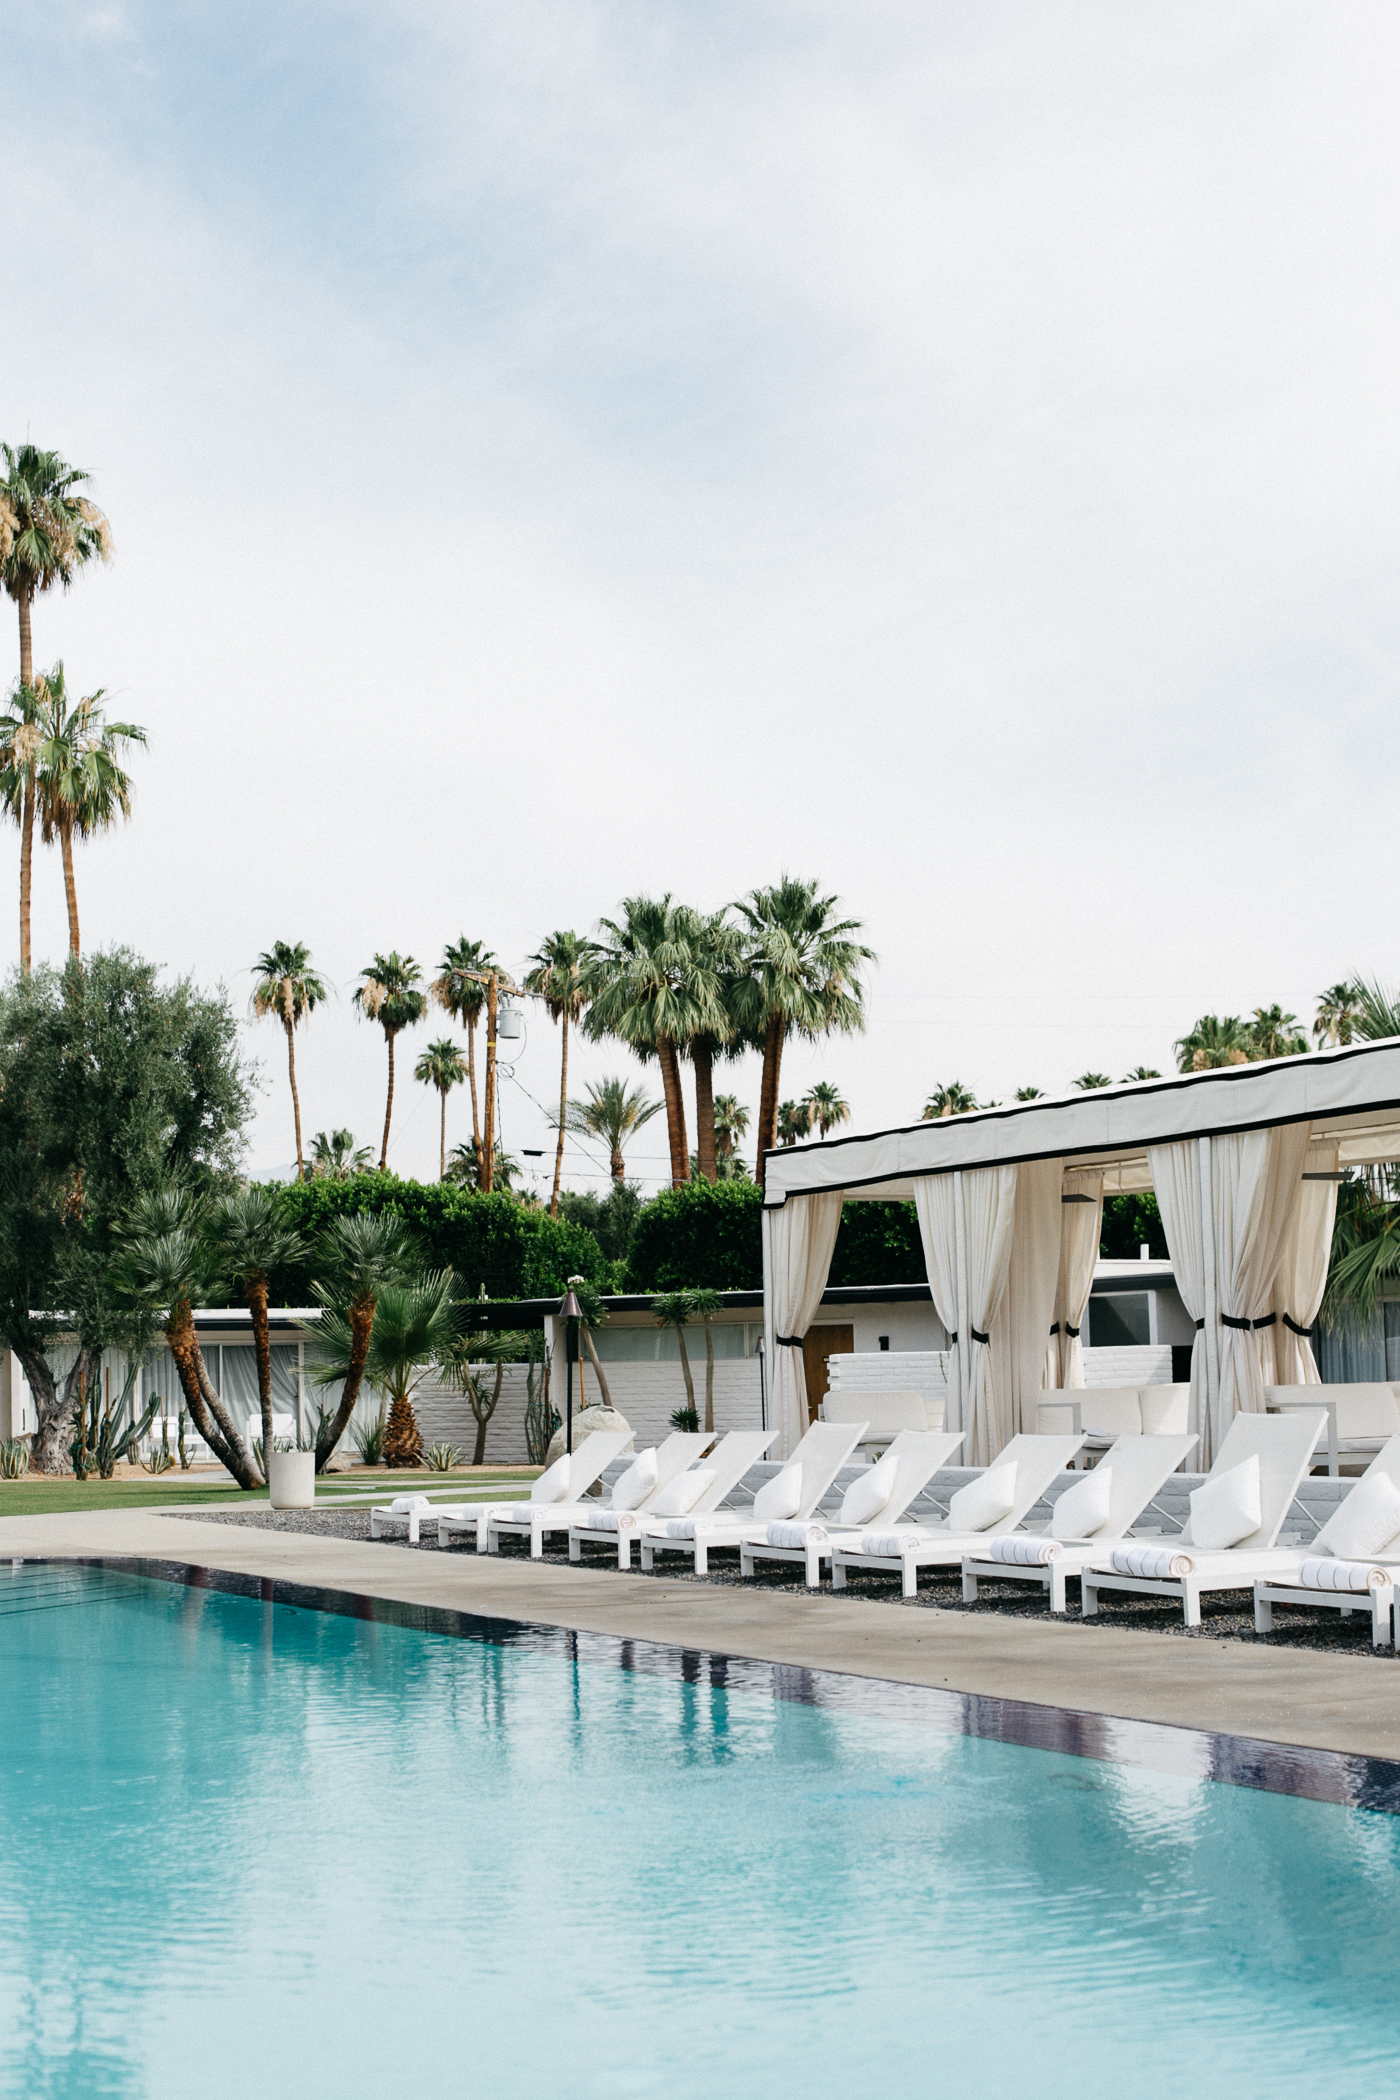 L'Horizon Palm Springs Hotel Review - Bikinis & Passports